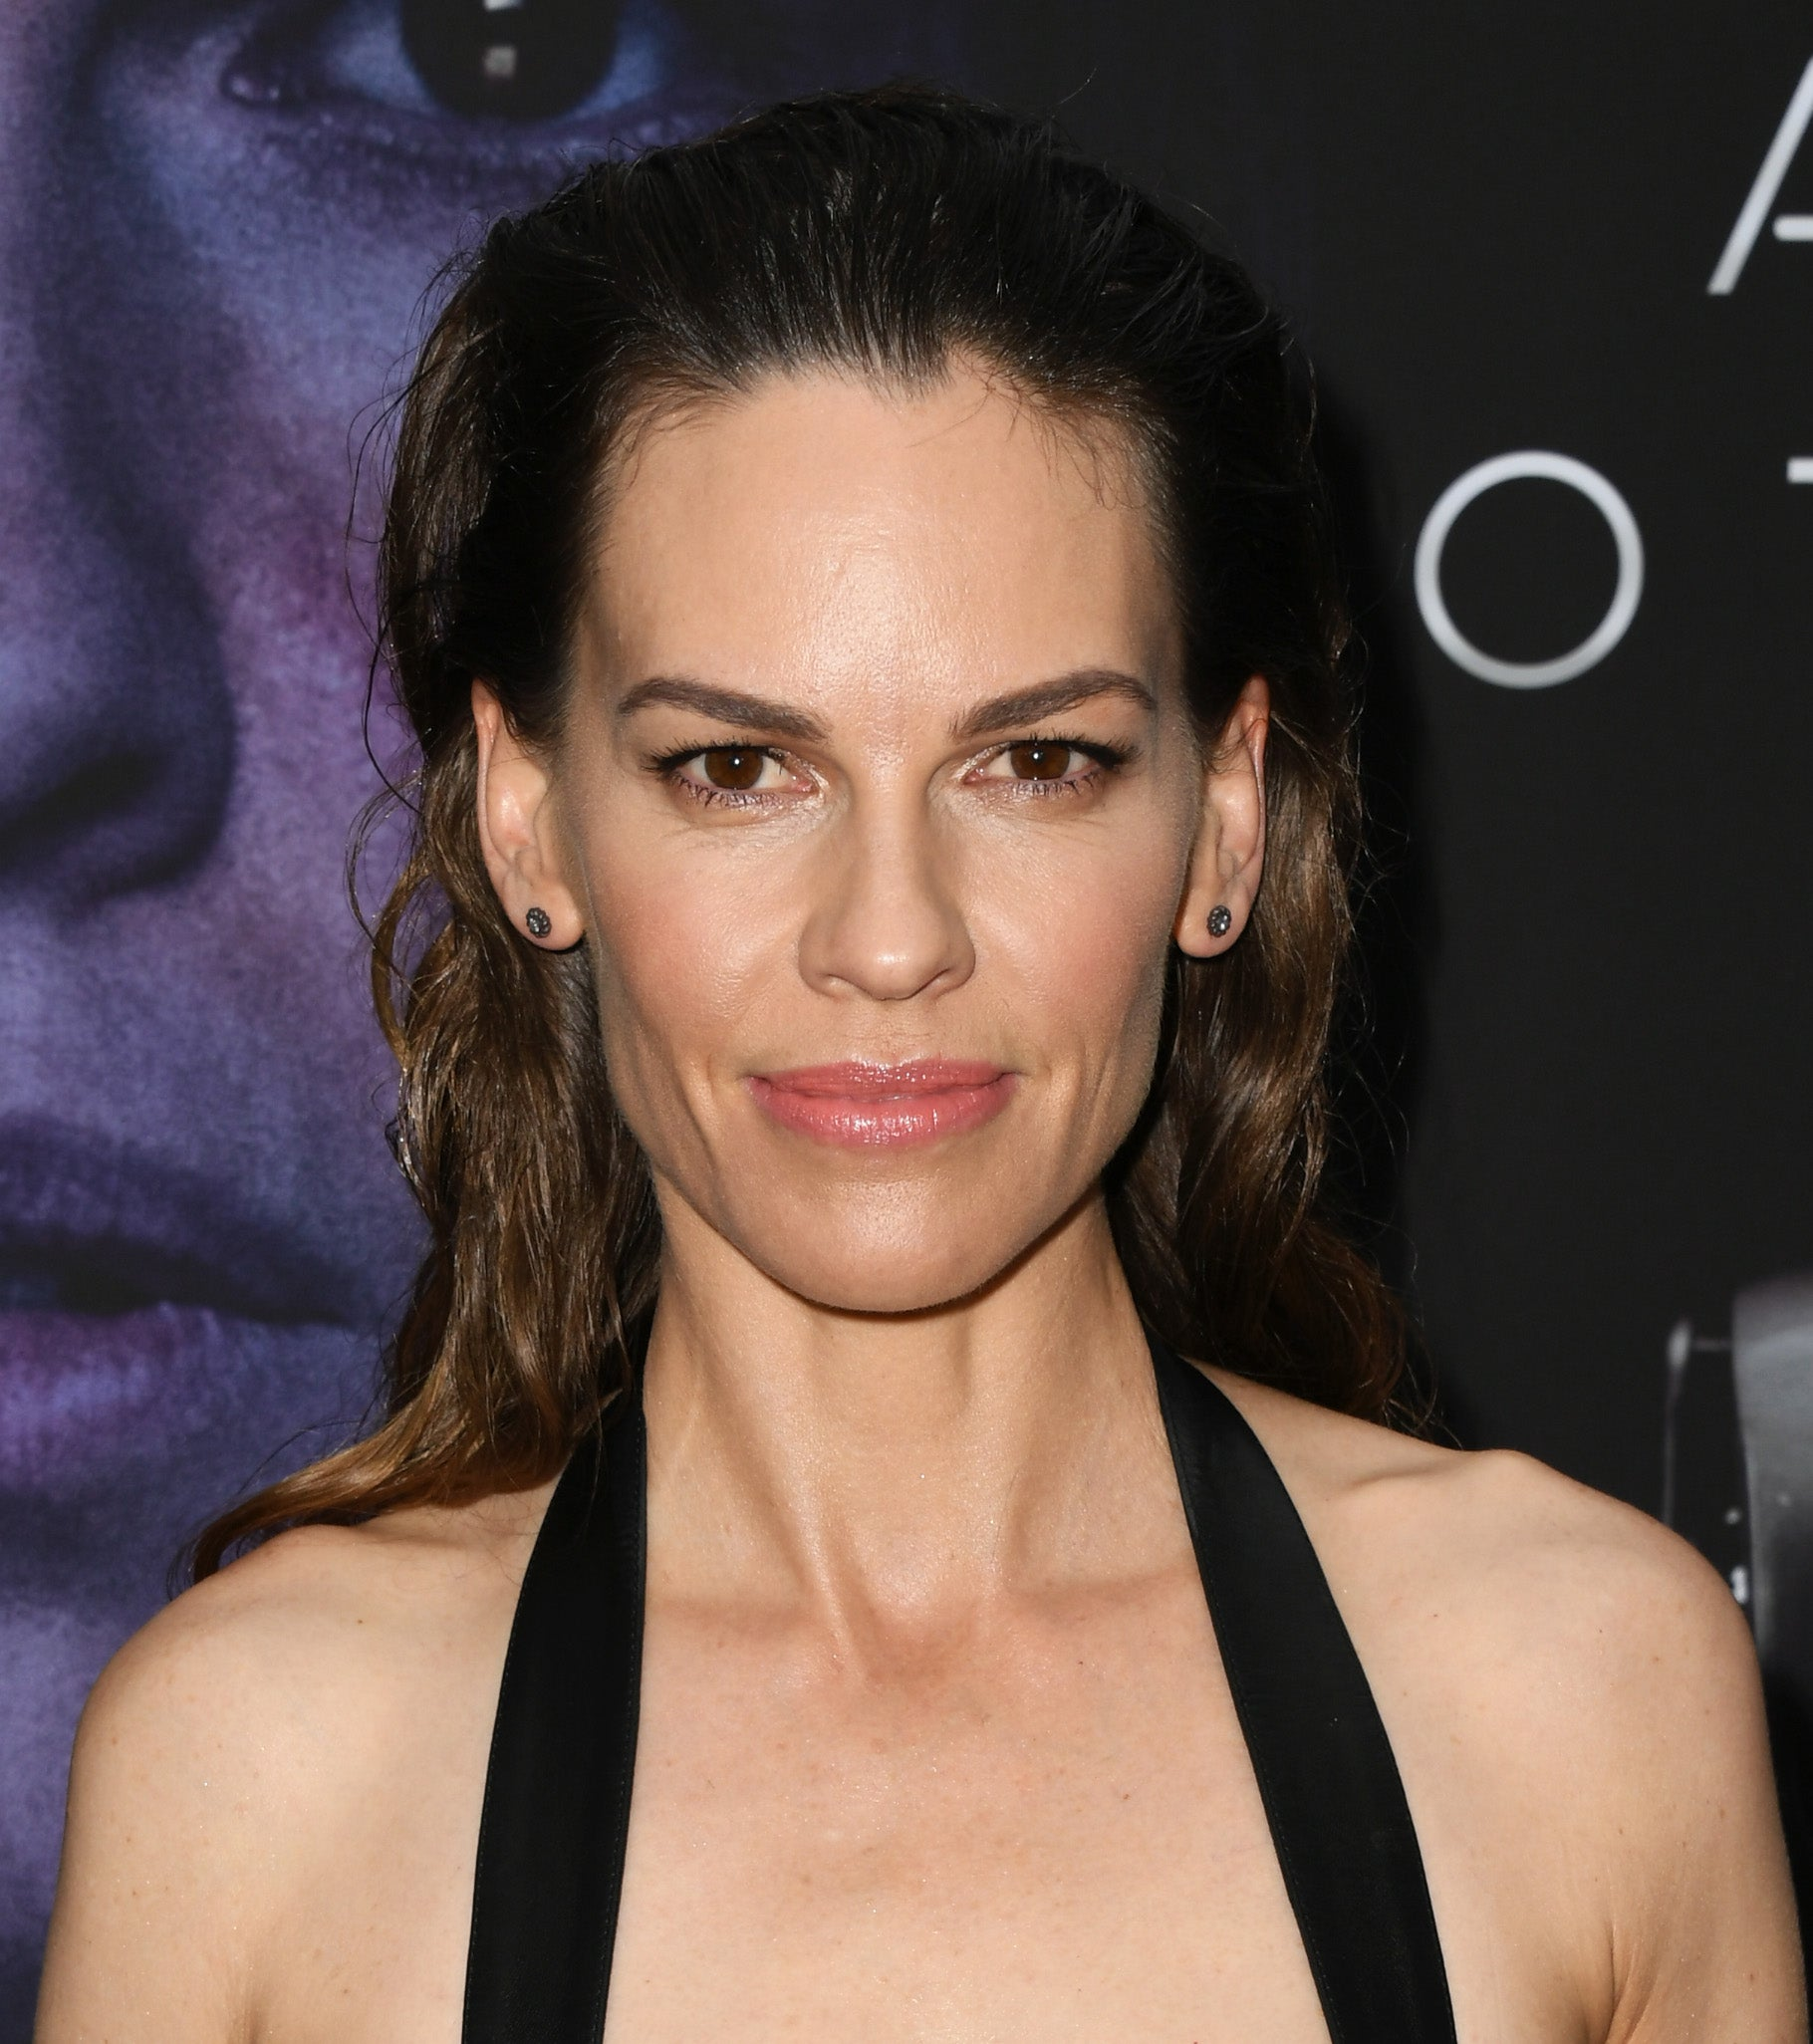 Actress and producer Hilary Swank, Golden Globe winner